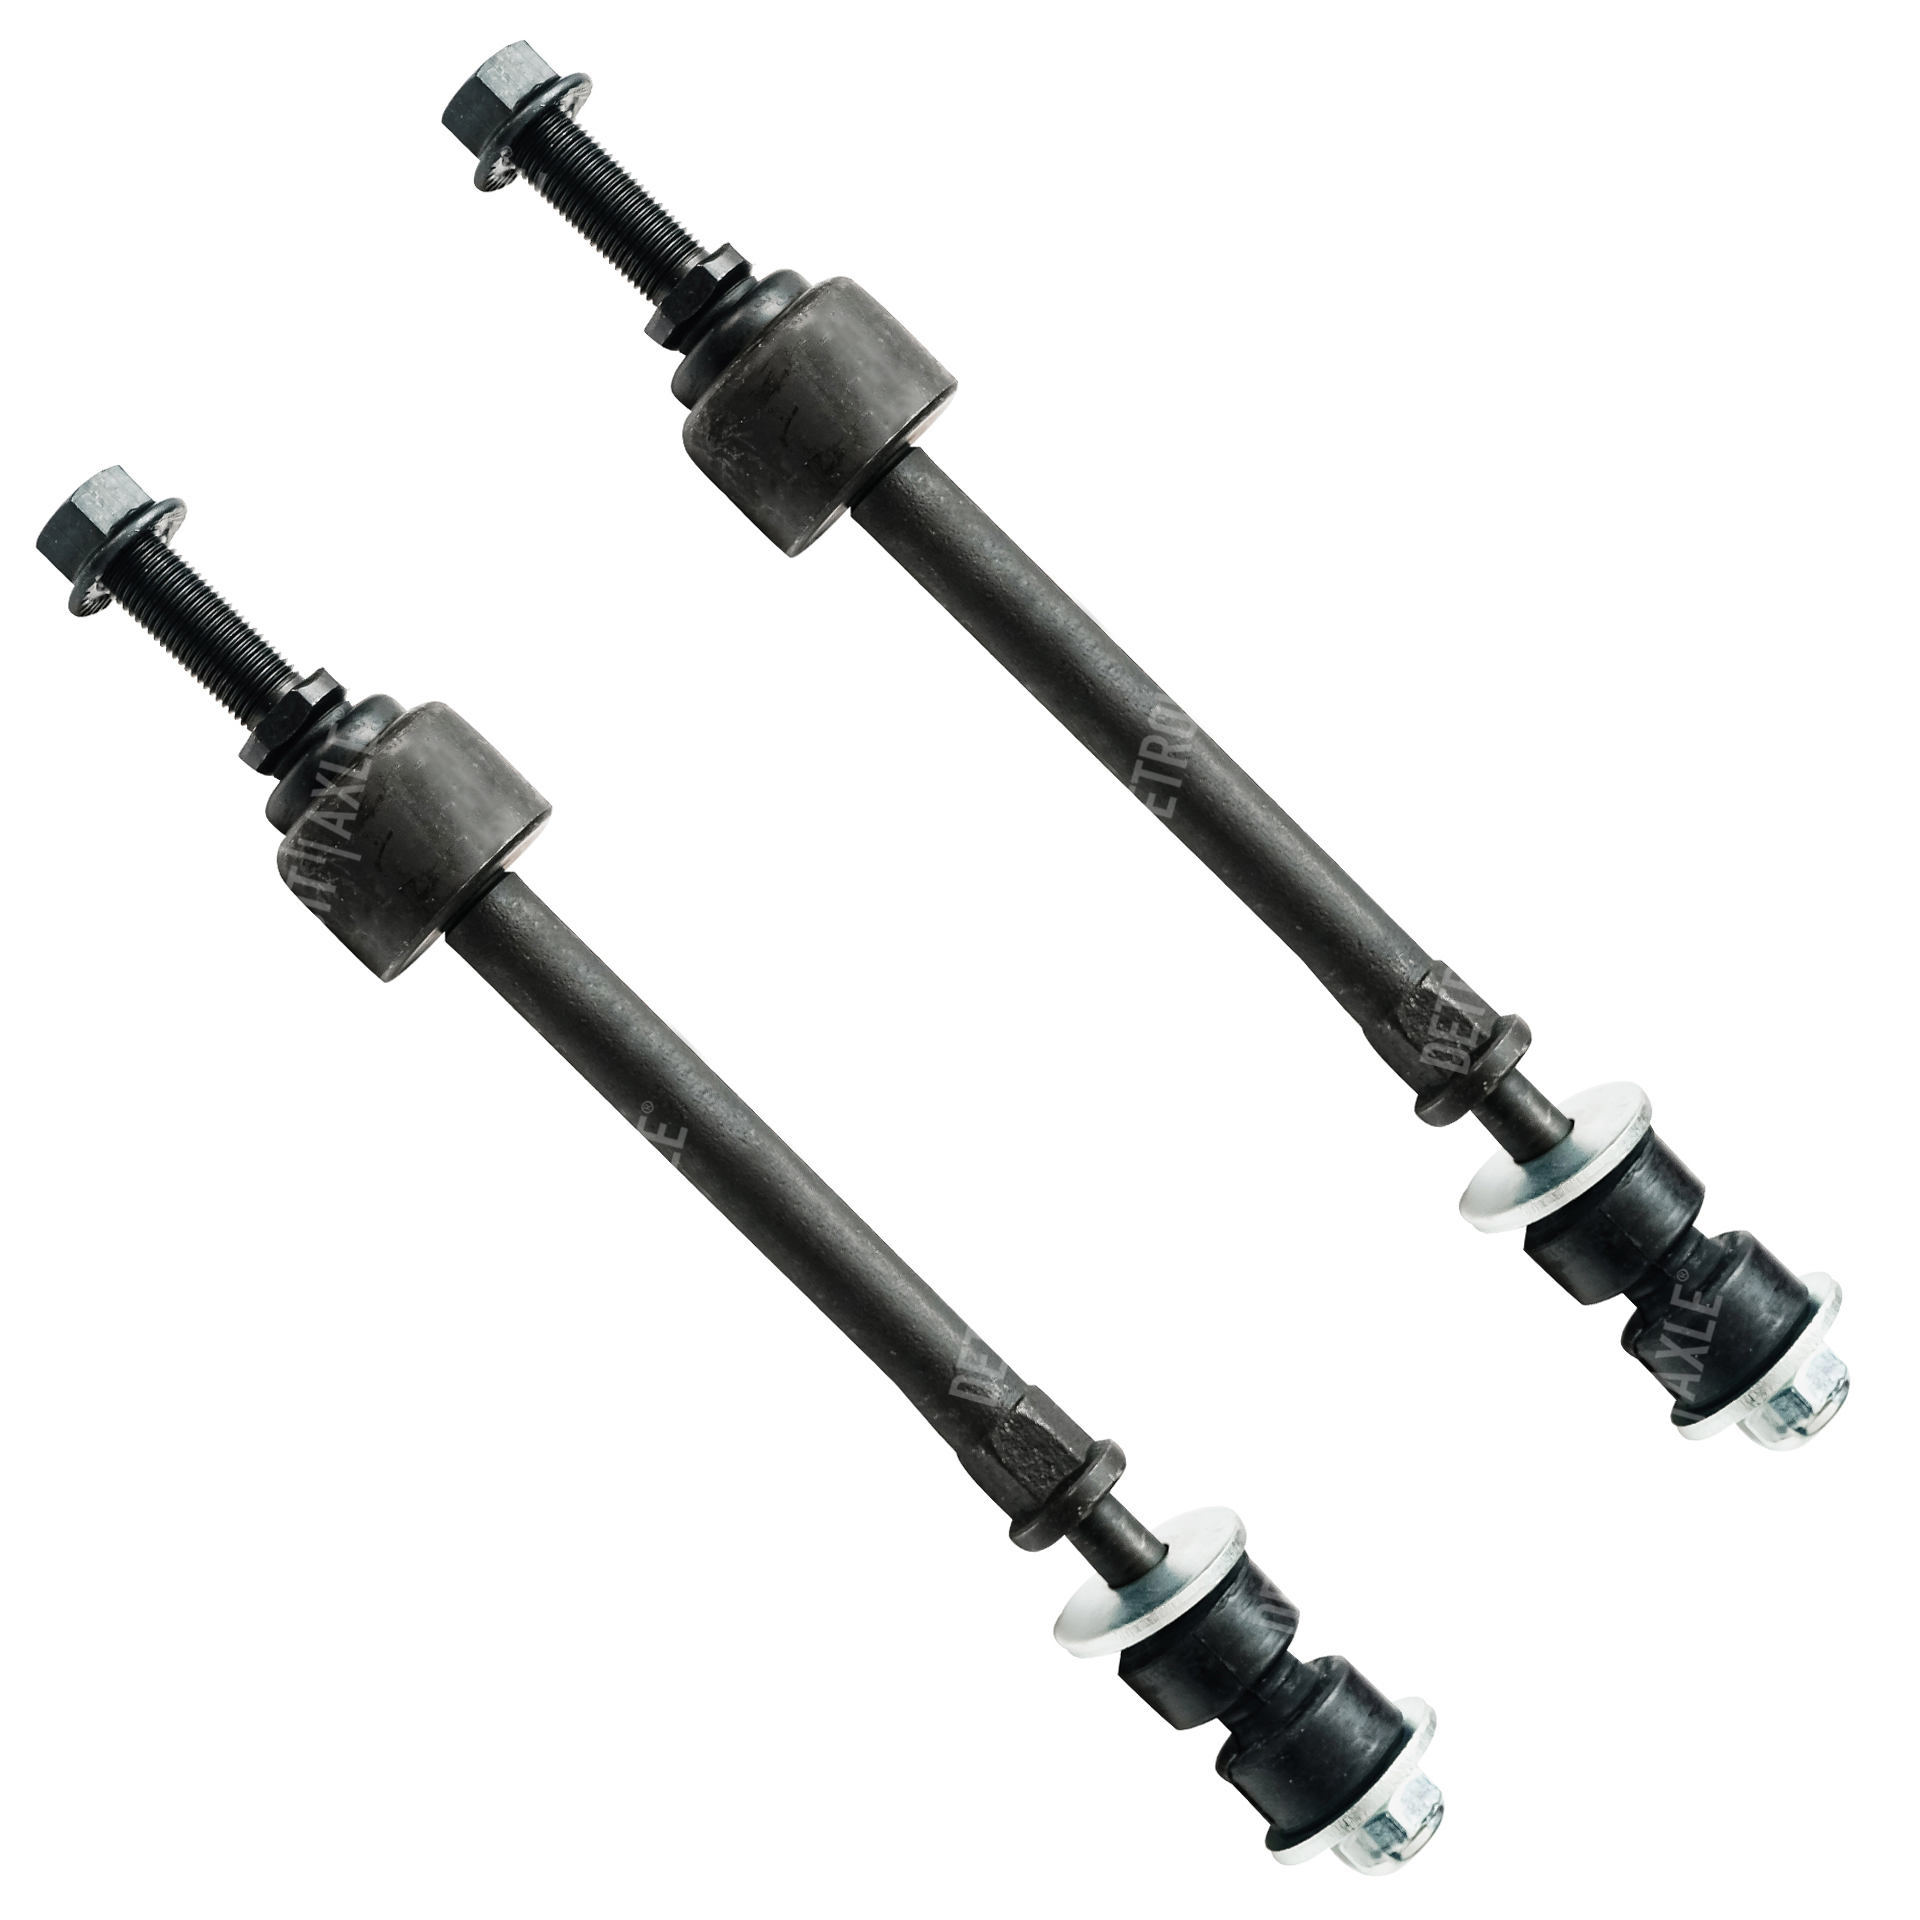 Both (2) Brand New Front Stabilizer Sway Bar End Link - Driver and Passenger Side fits 4x4 Only - 5-LUG